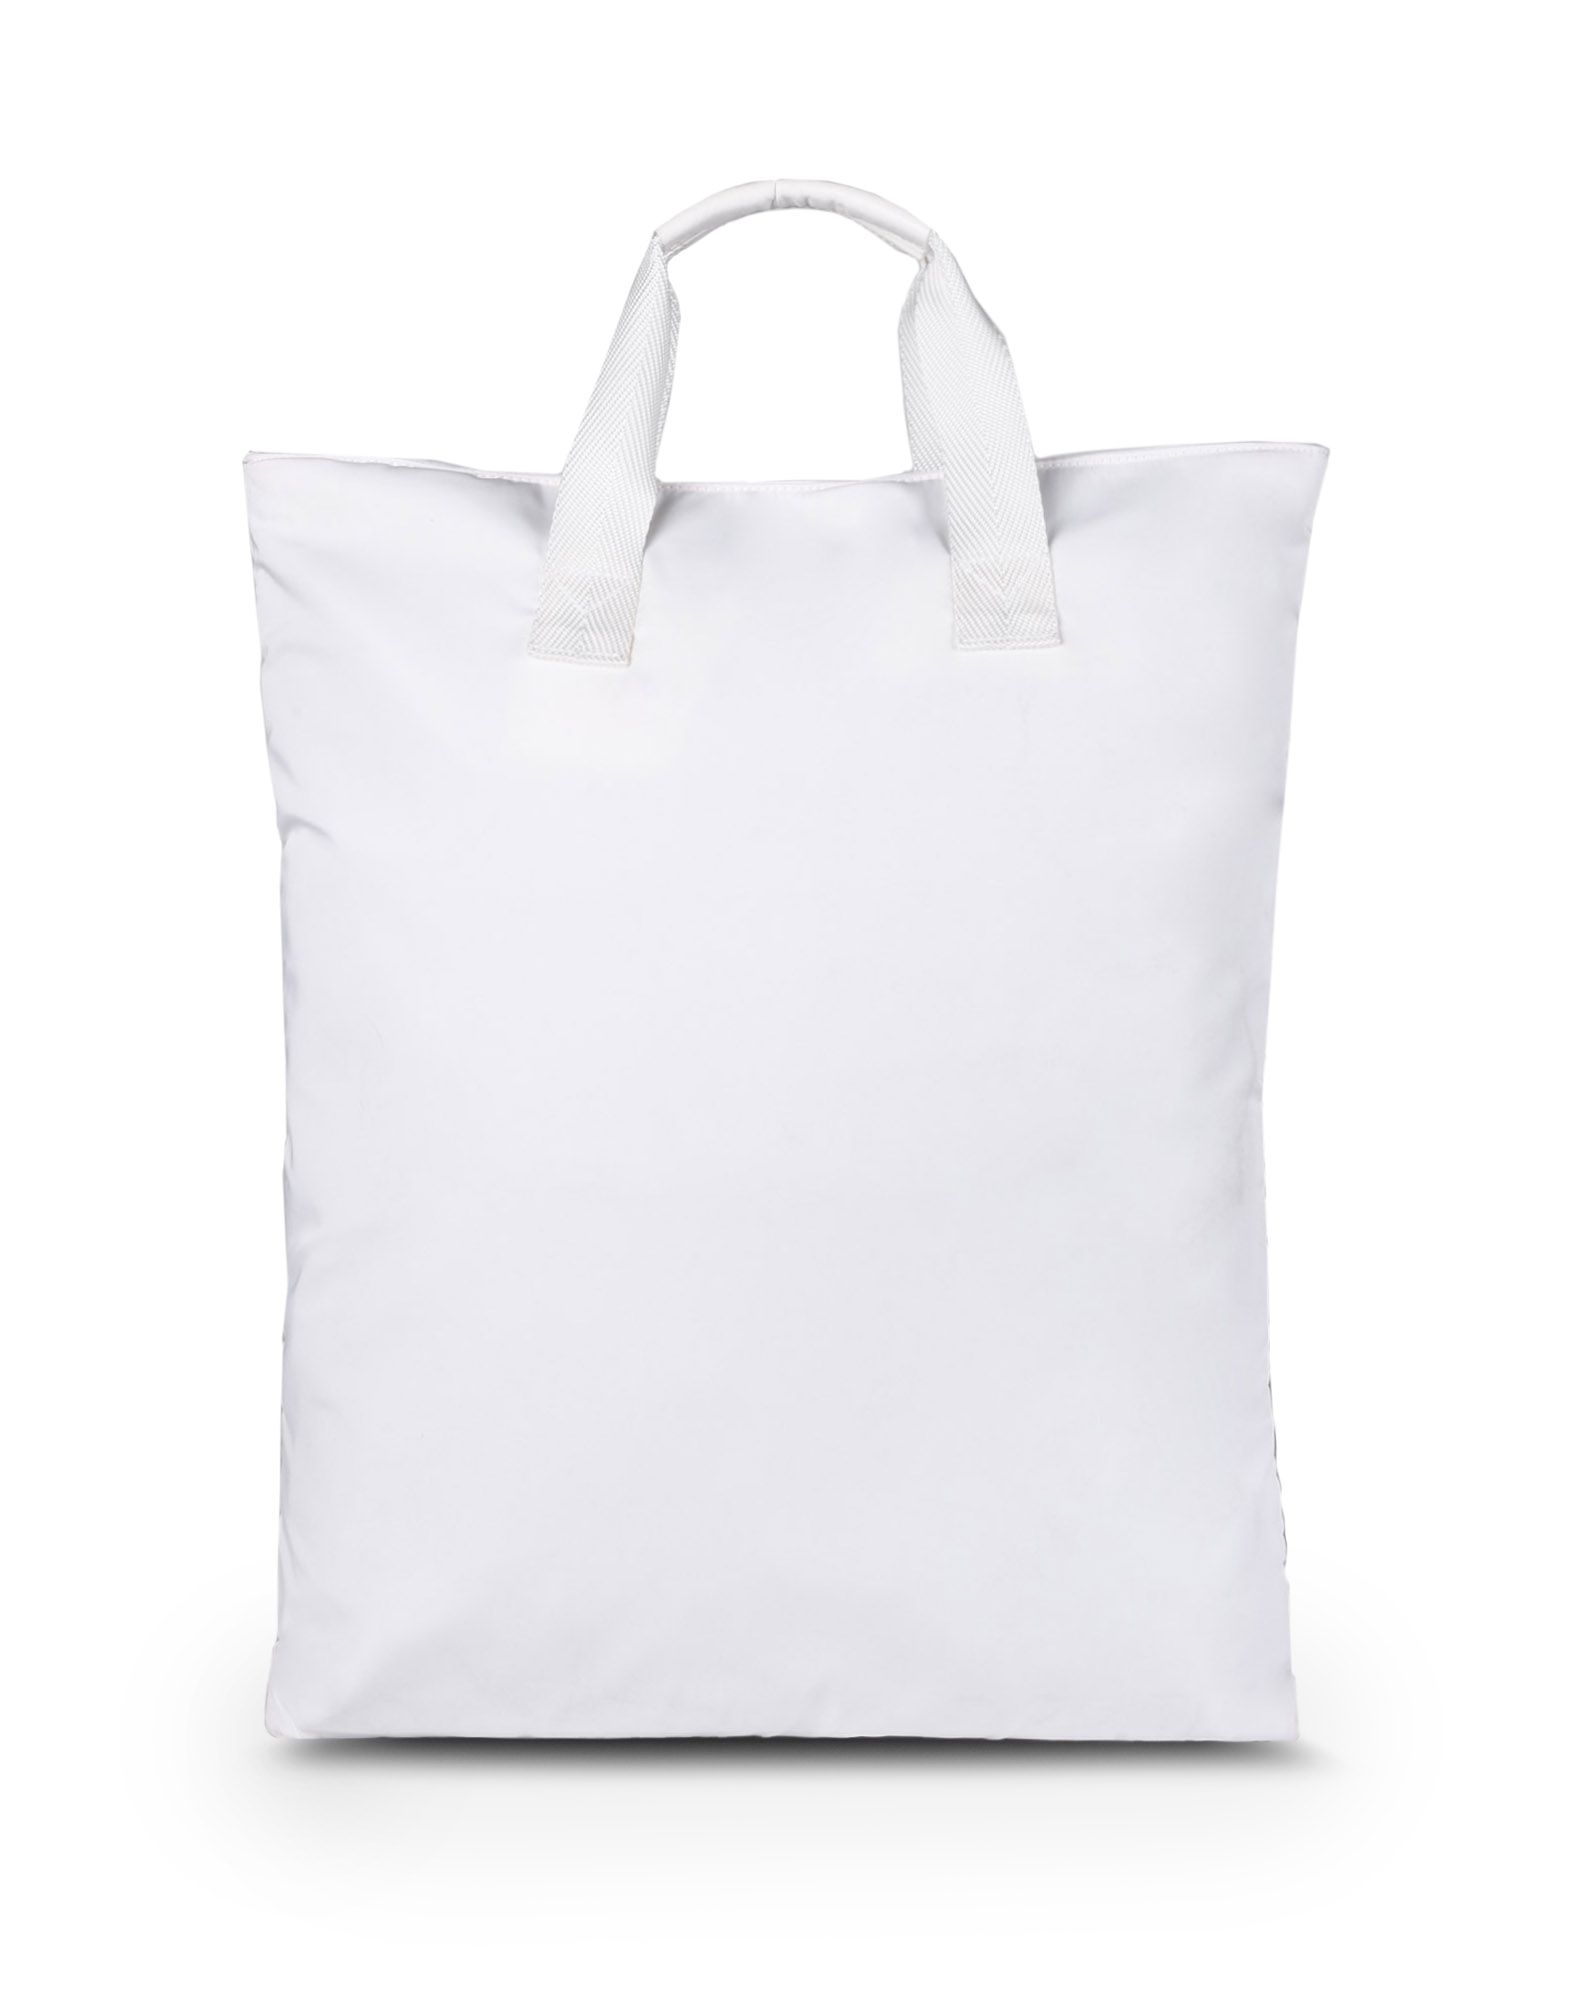 Y-3 Y-3 TOTE BAG Medium fabric bag E e